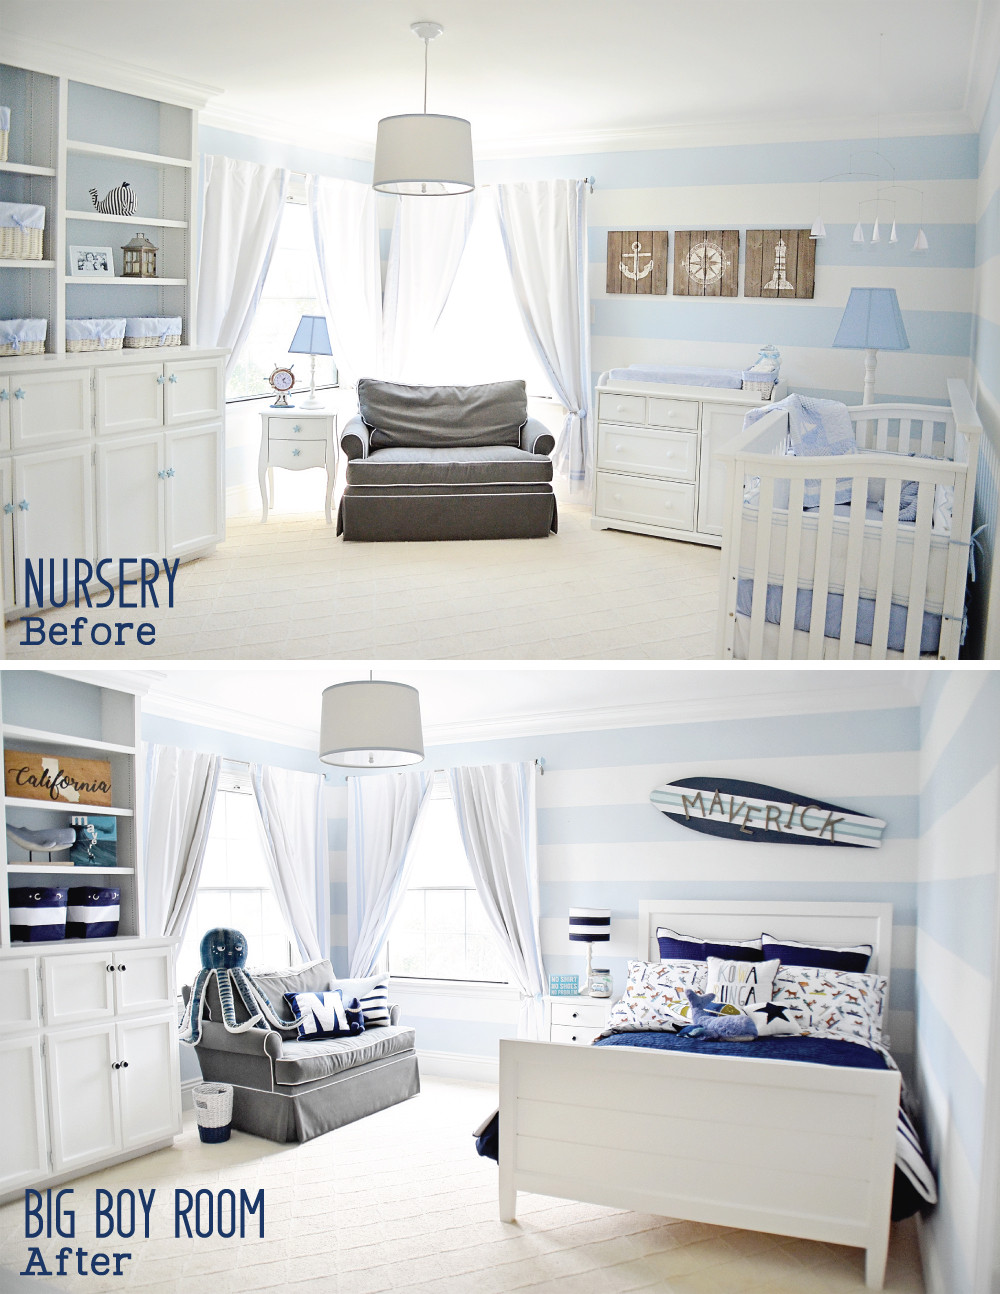 Before and After photos of Maverick's Room!